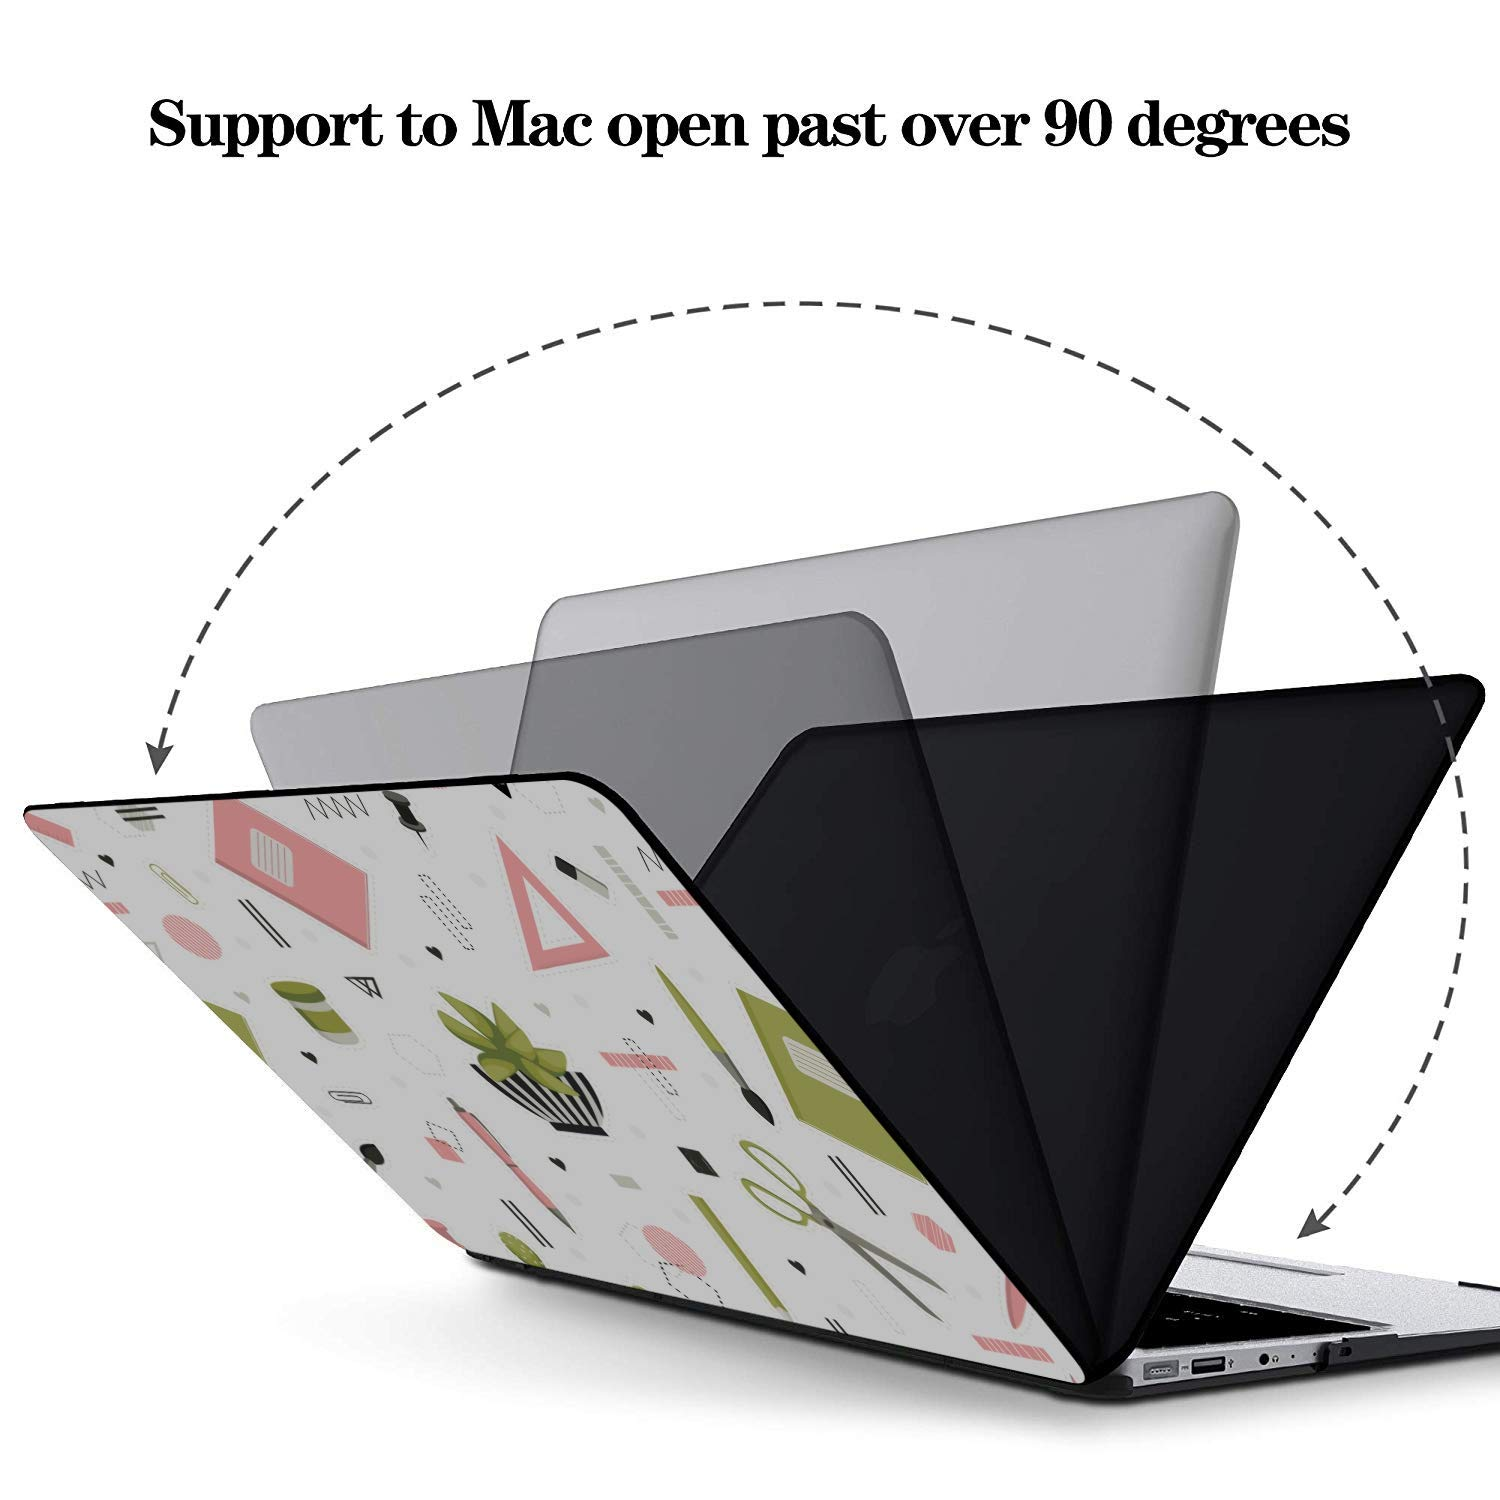 MacBook Pro 13inch Case School Creative Art Fashion Pen Writing Plastic Hard Shell Compatible Mac Air 11 Pro 13 15 MacBook Assessories Protection for MacBook 2016-2019 Version